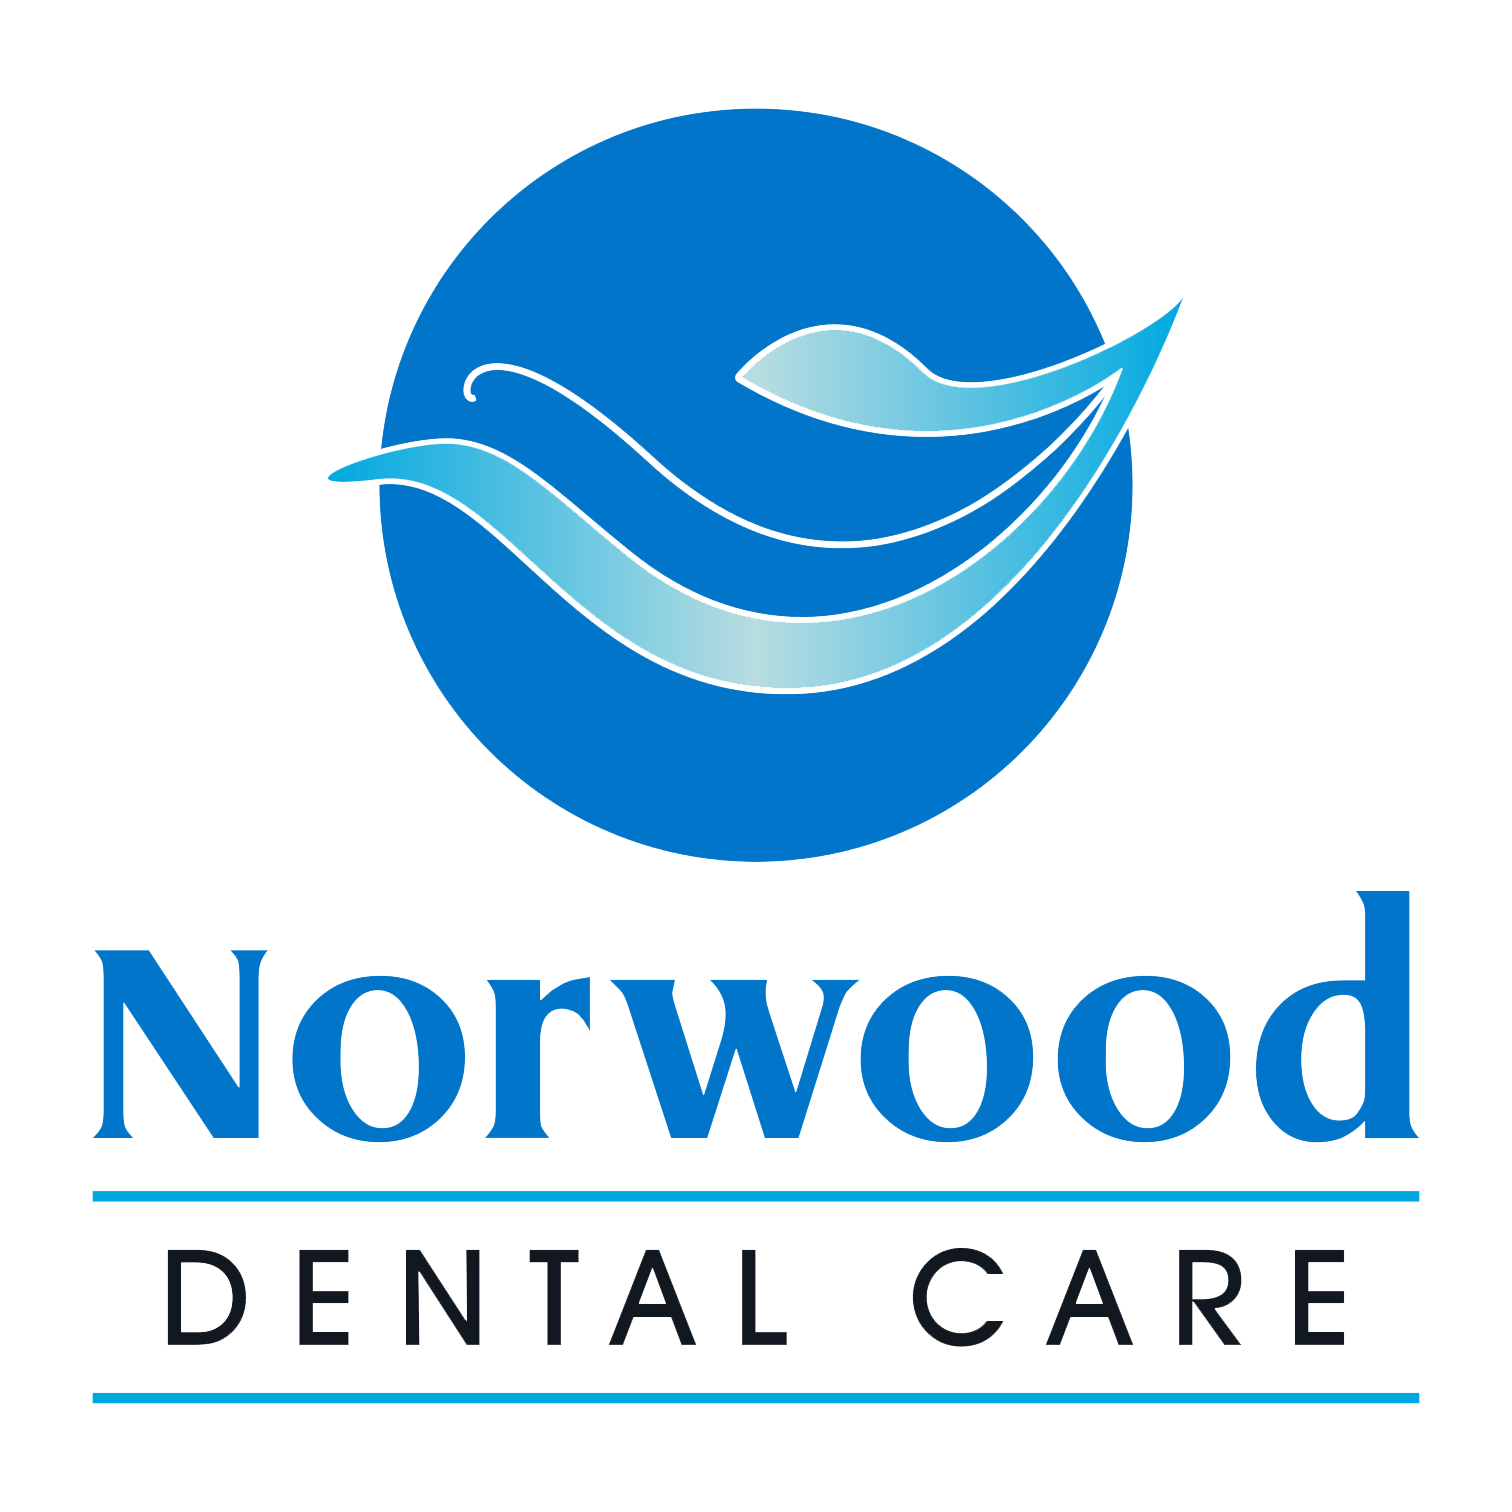 Norwood Dental Care Logo